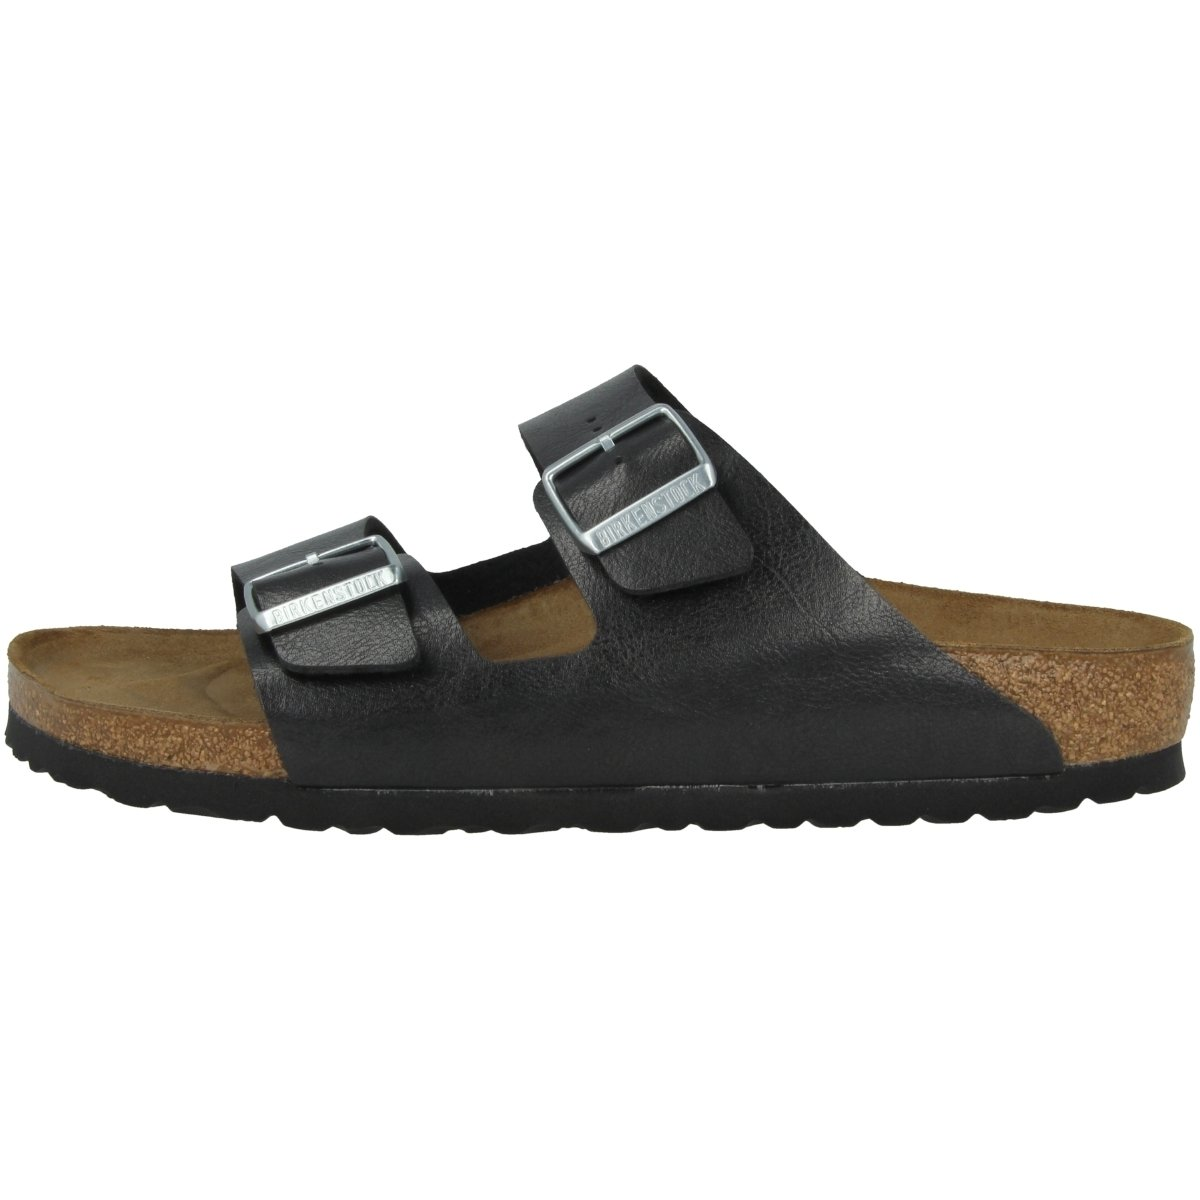 Details about Birkenstock Women s Arizona Sandals Graceful Licorice Size EU  38 US 7-7.5N 6bd315d1731